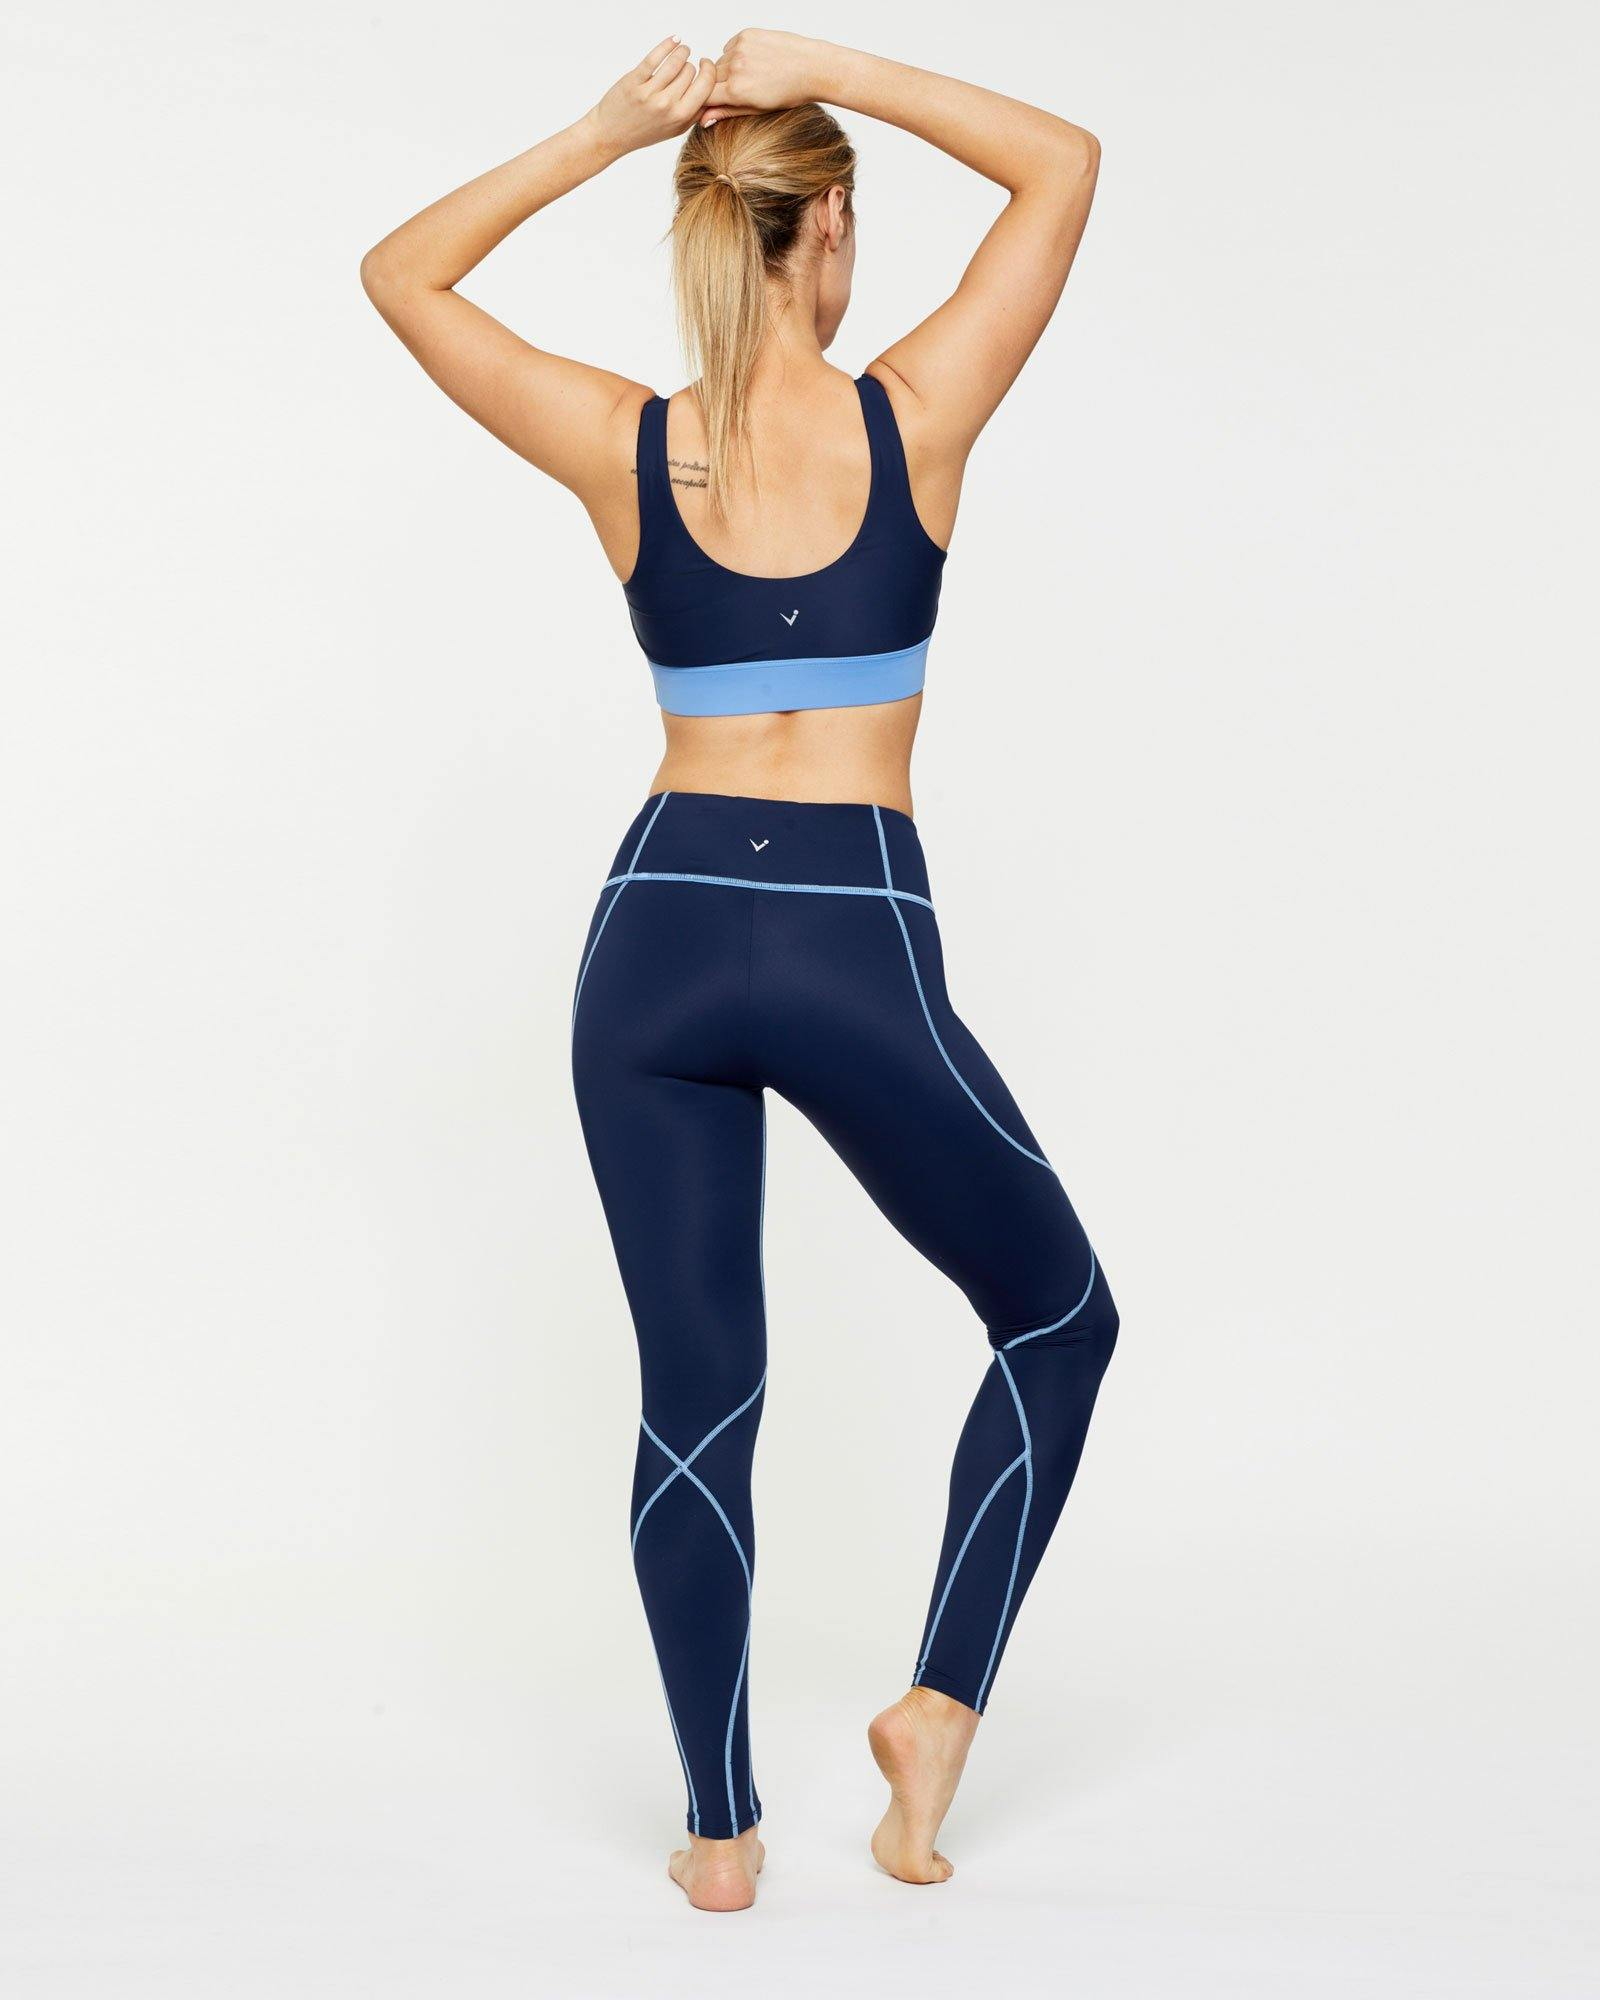 Femininely Pectoralis Navy bra top with contrast under bust band worn with Vastus navy mid waist long legging, back view, great for pilates, barre and in-studio workouts